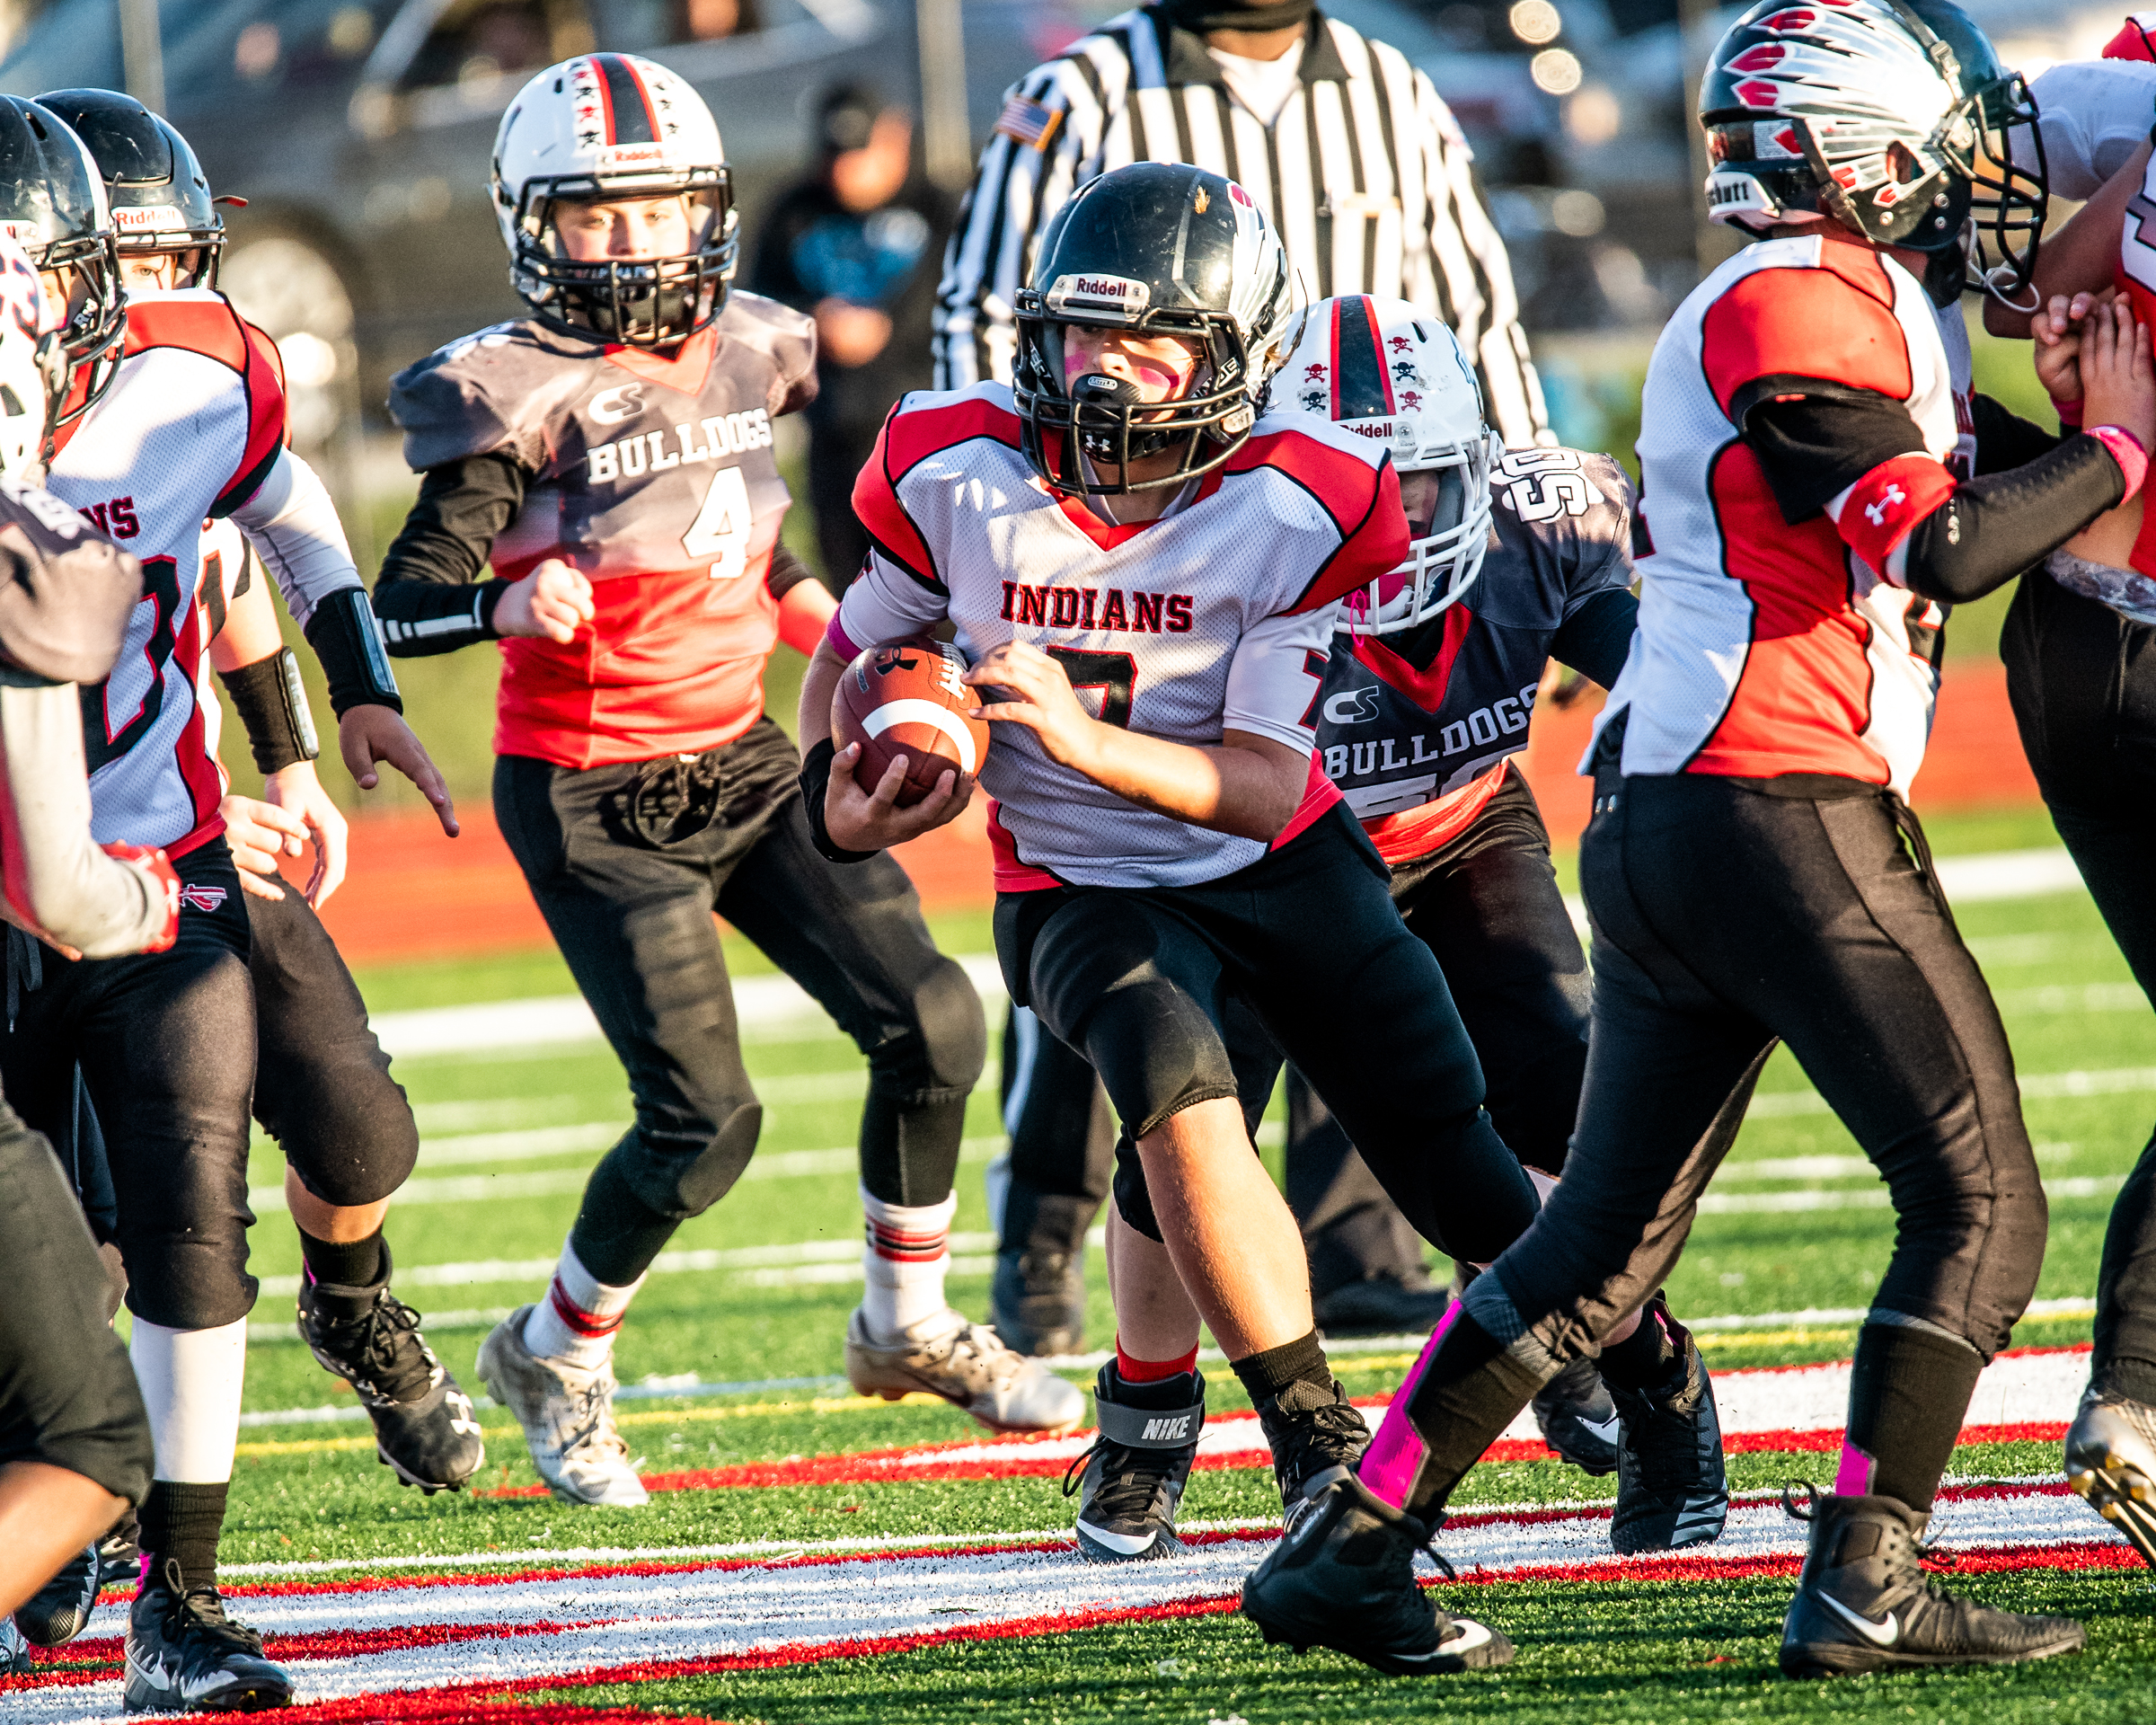 Fort Osage Youth League Football